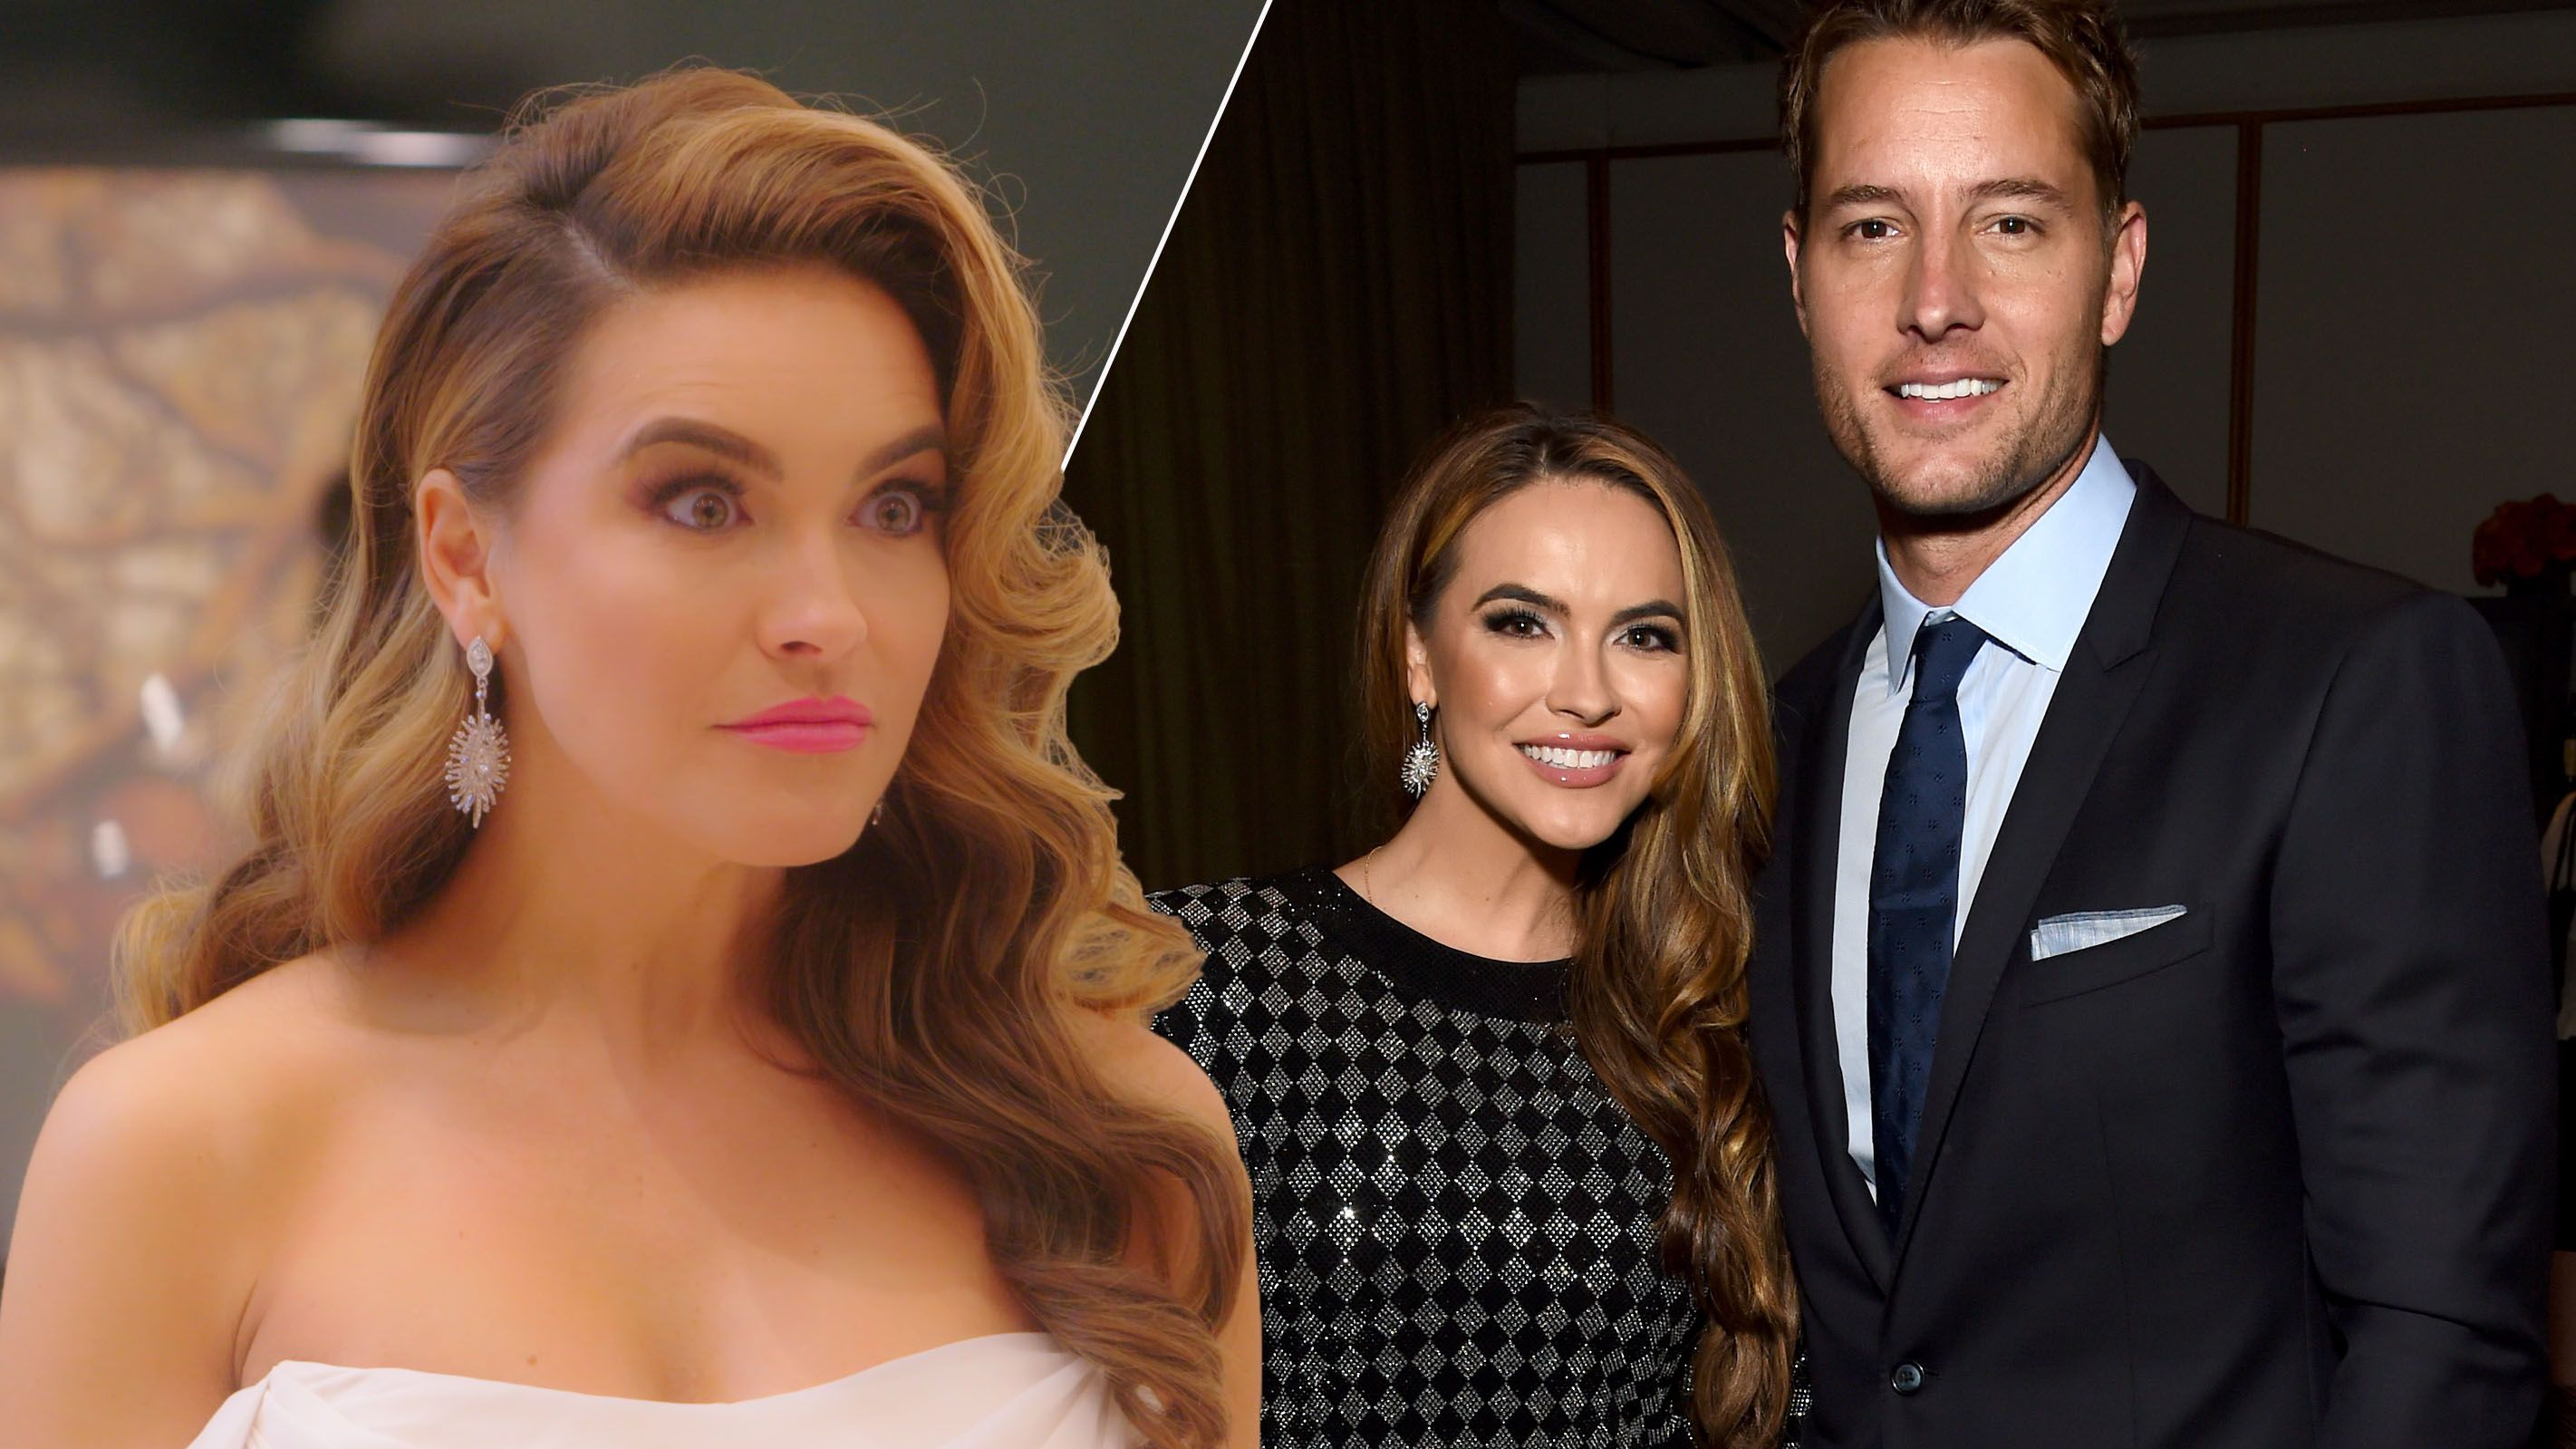 Justin Hartley goes Insta official with new GF after filing for divorce from Selling Sunset's Chrishell